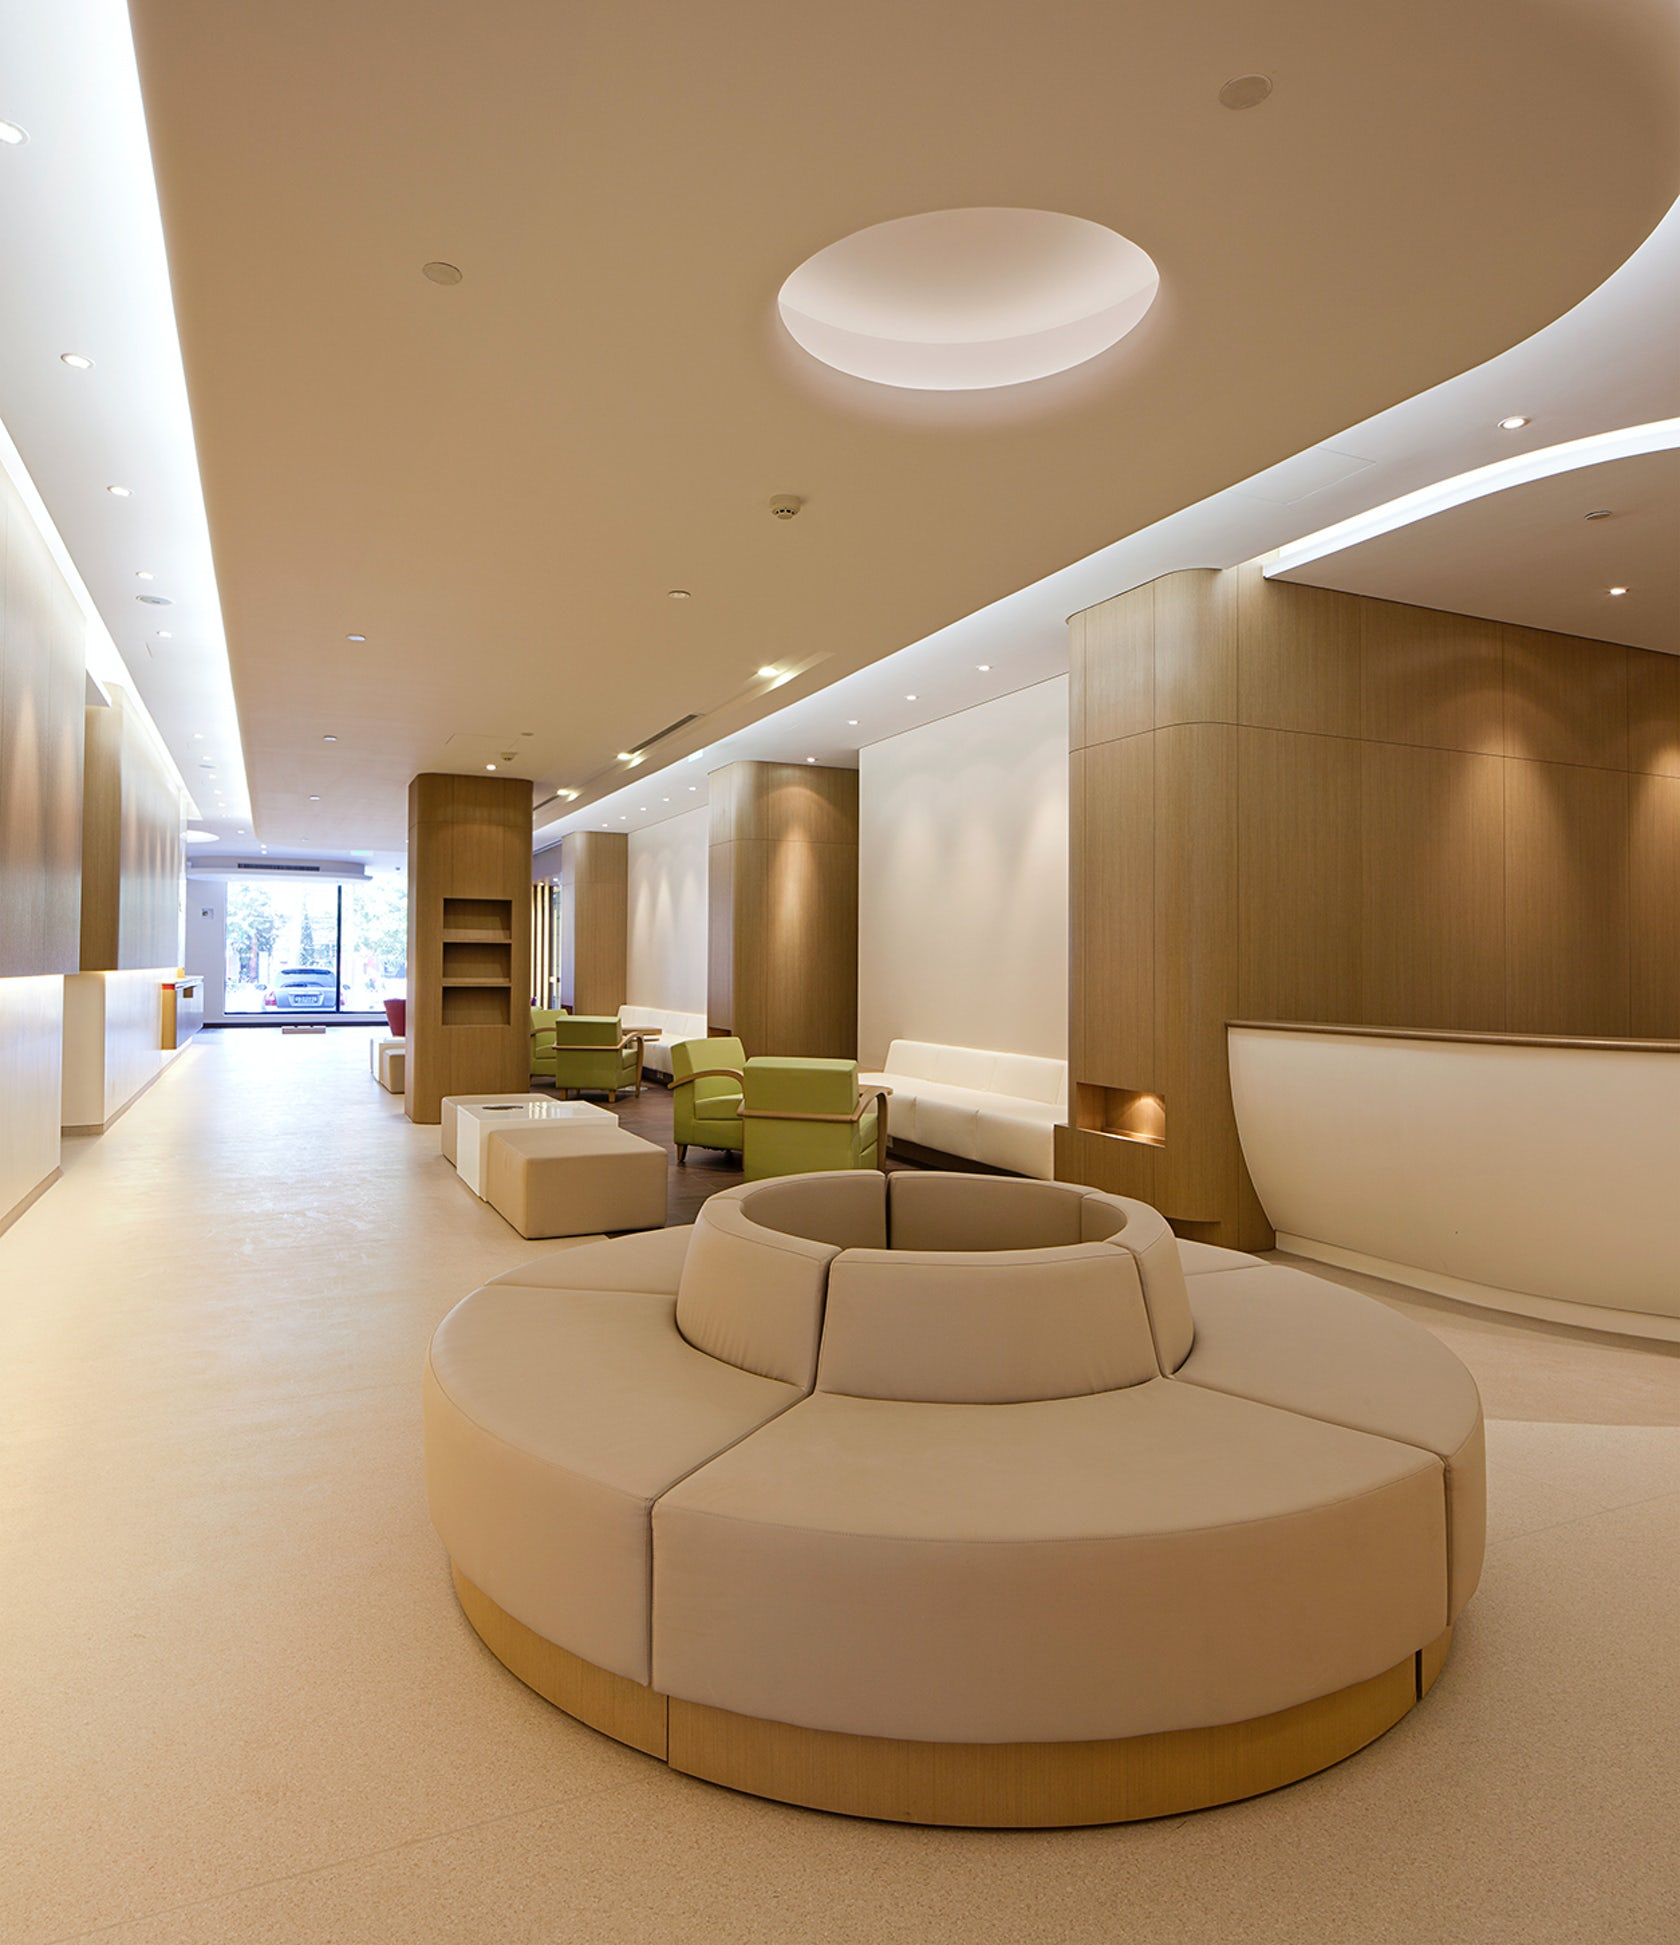 American sino hospital audong clinic architizer for Furniture design classes nyc